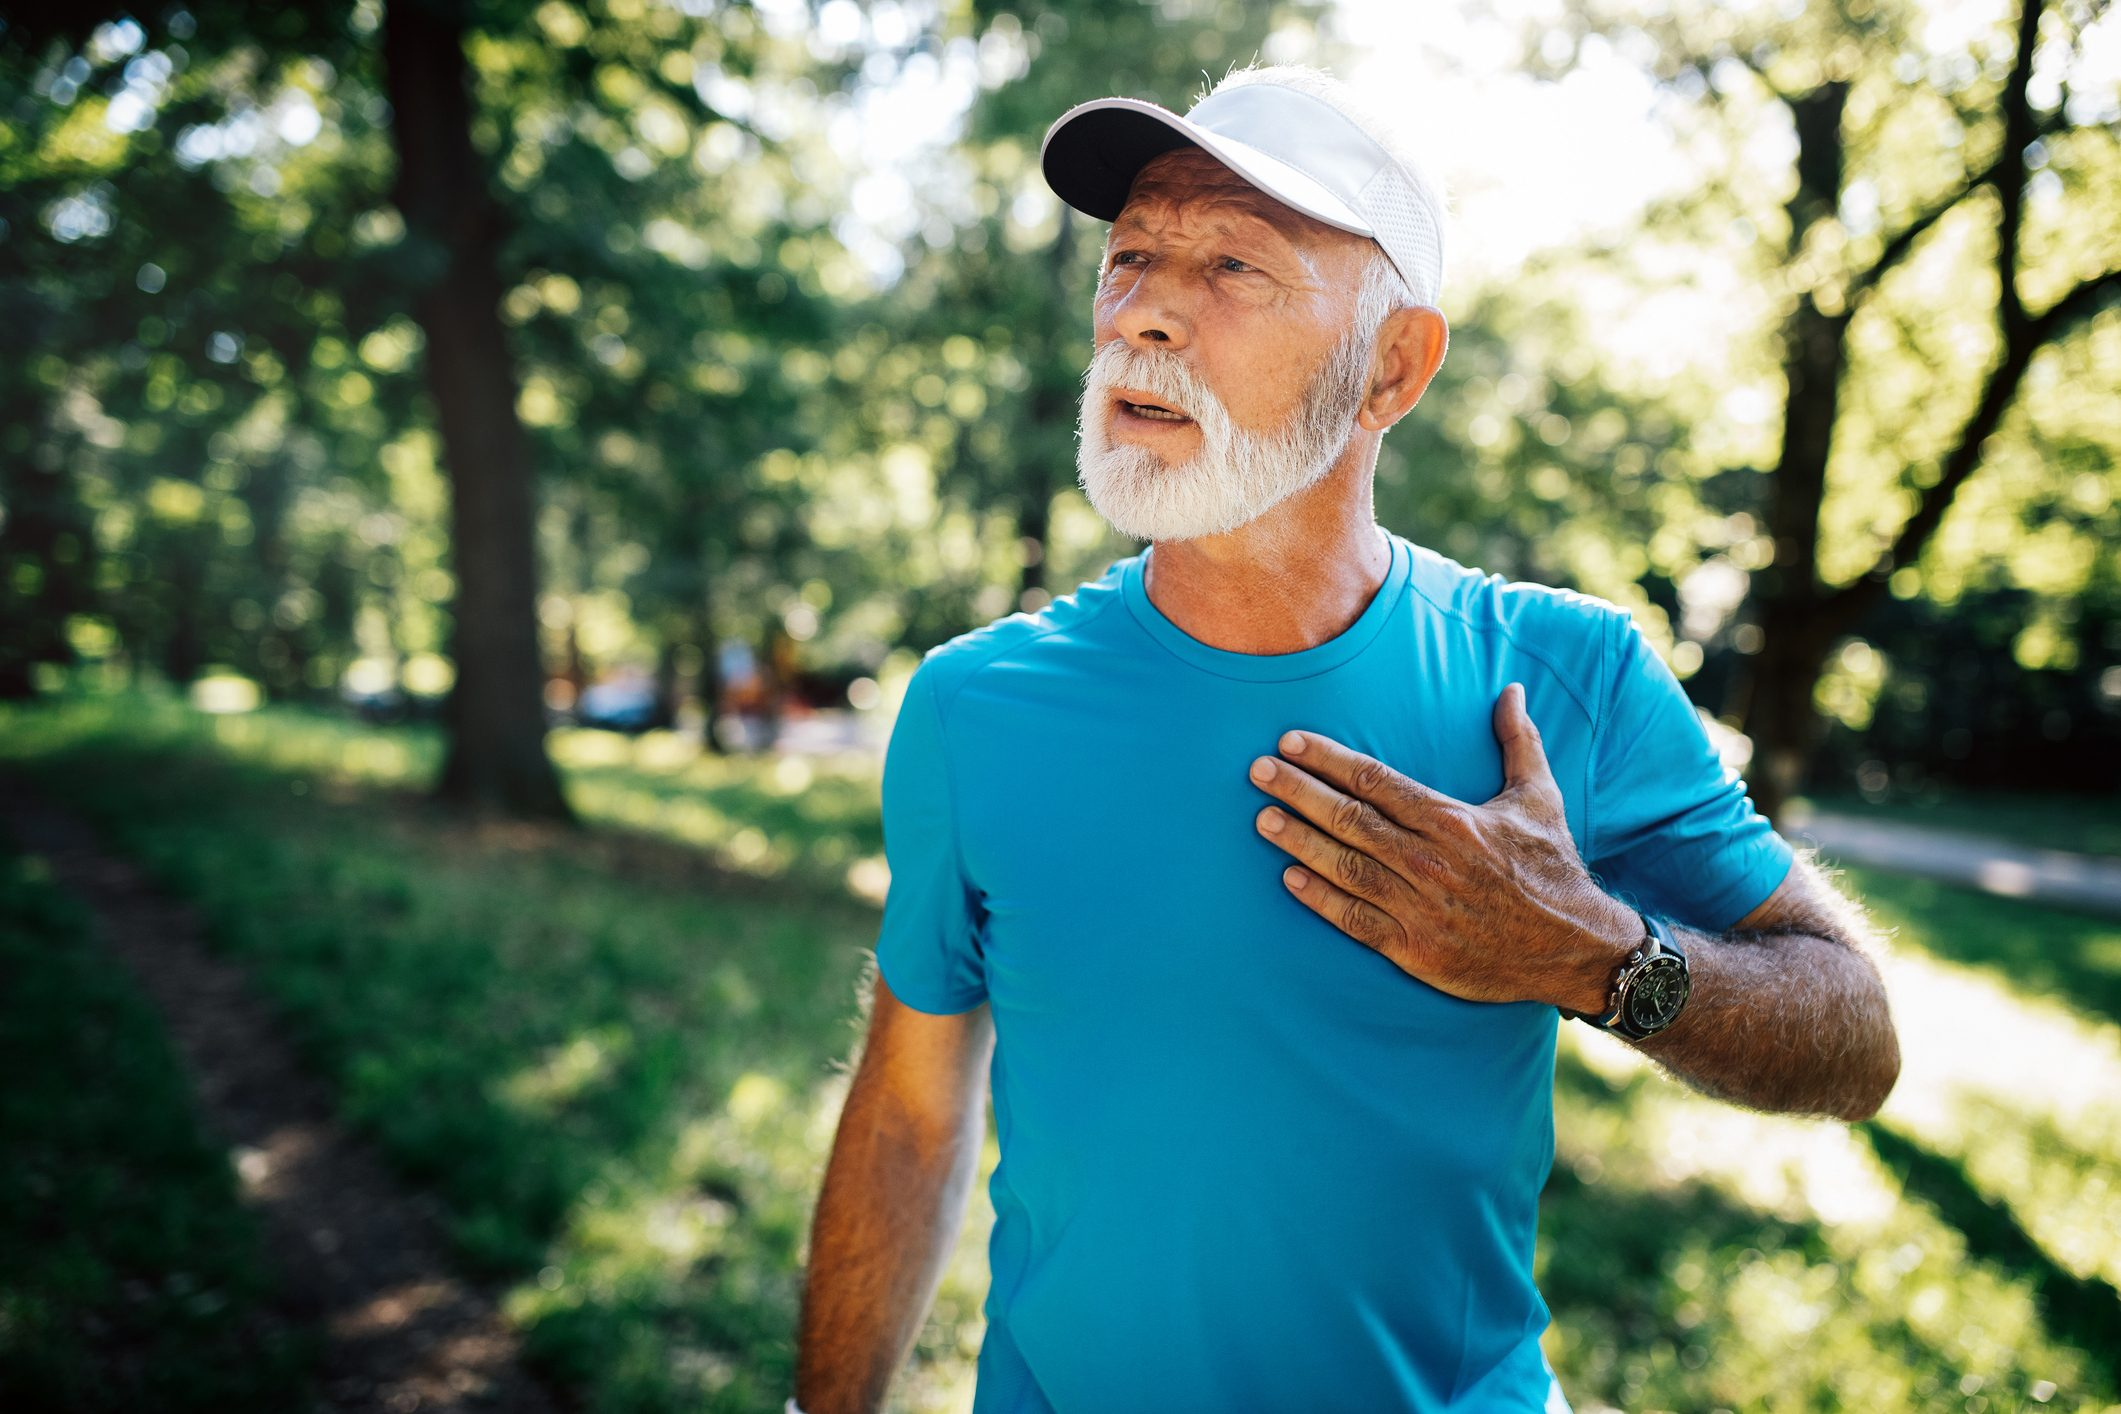 Mature man athlete with sore left chest pain dizziness